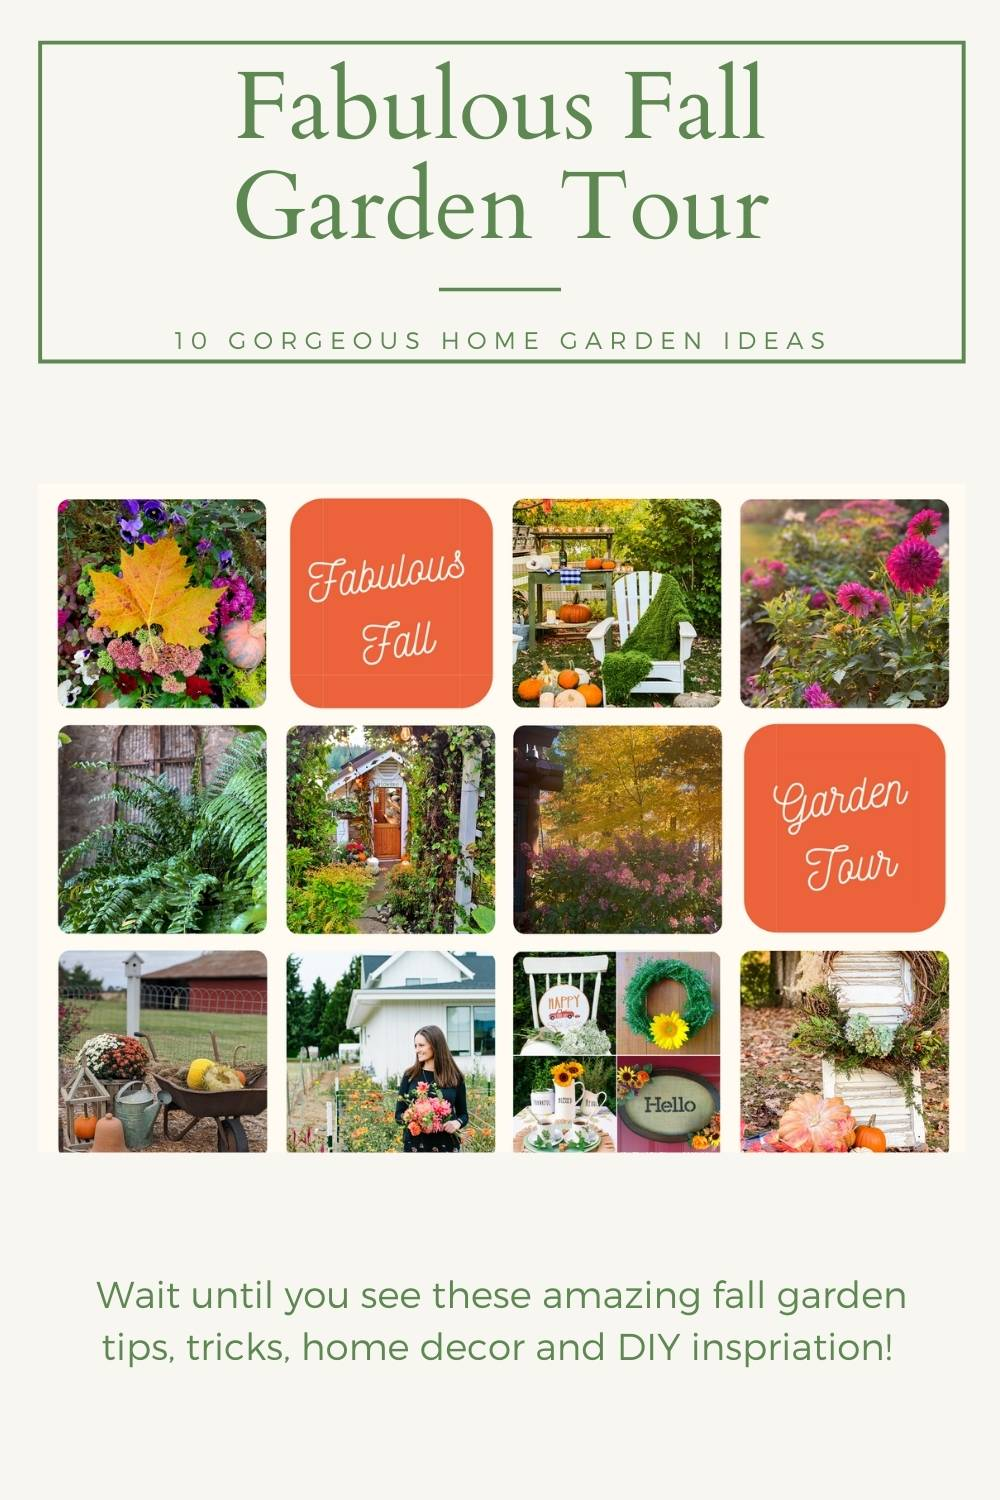 Fabulous Fall Garden Tour